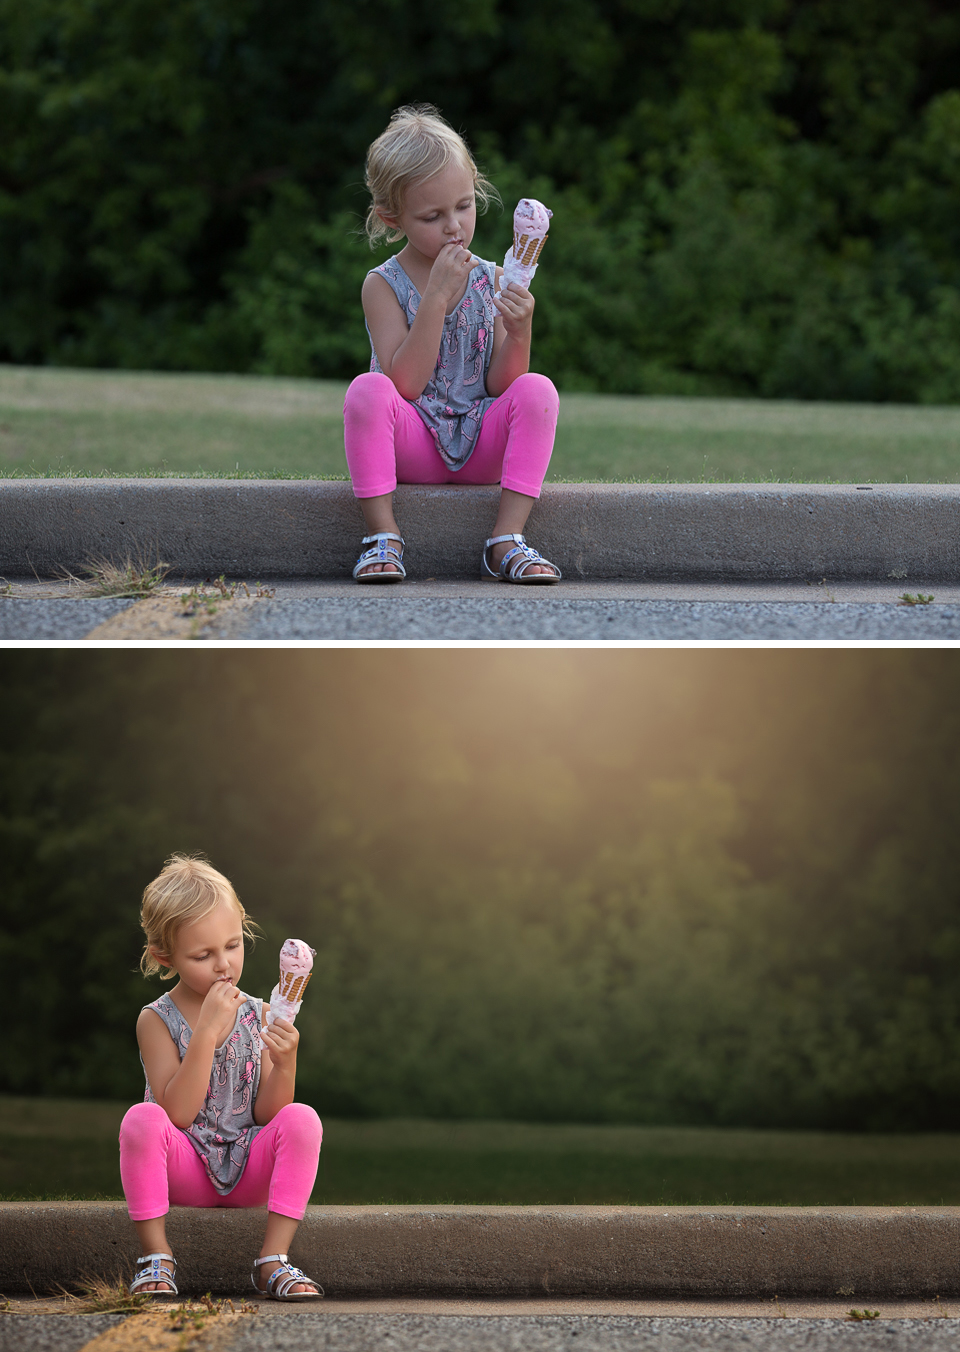 01 evening ice cream girl sitting on curb strawberry ice cream cone golden hour edmond ok oklahoma city photographer